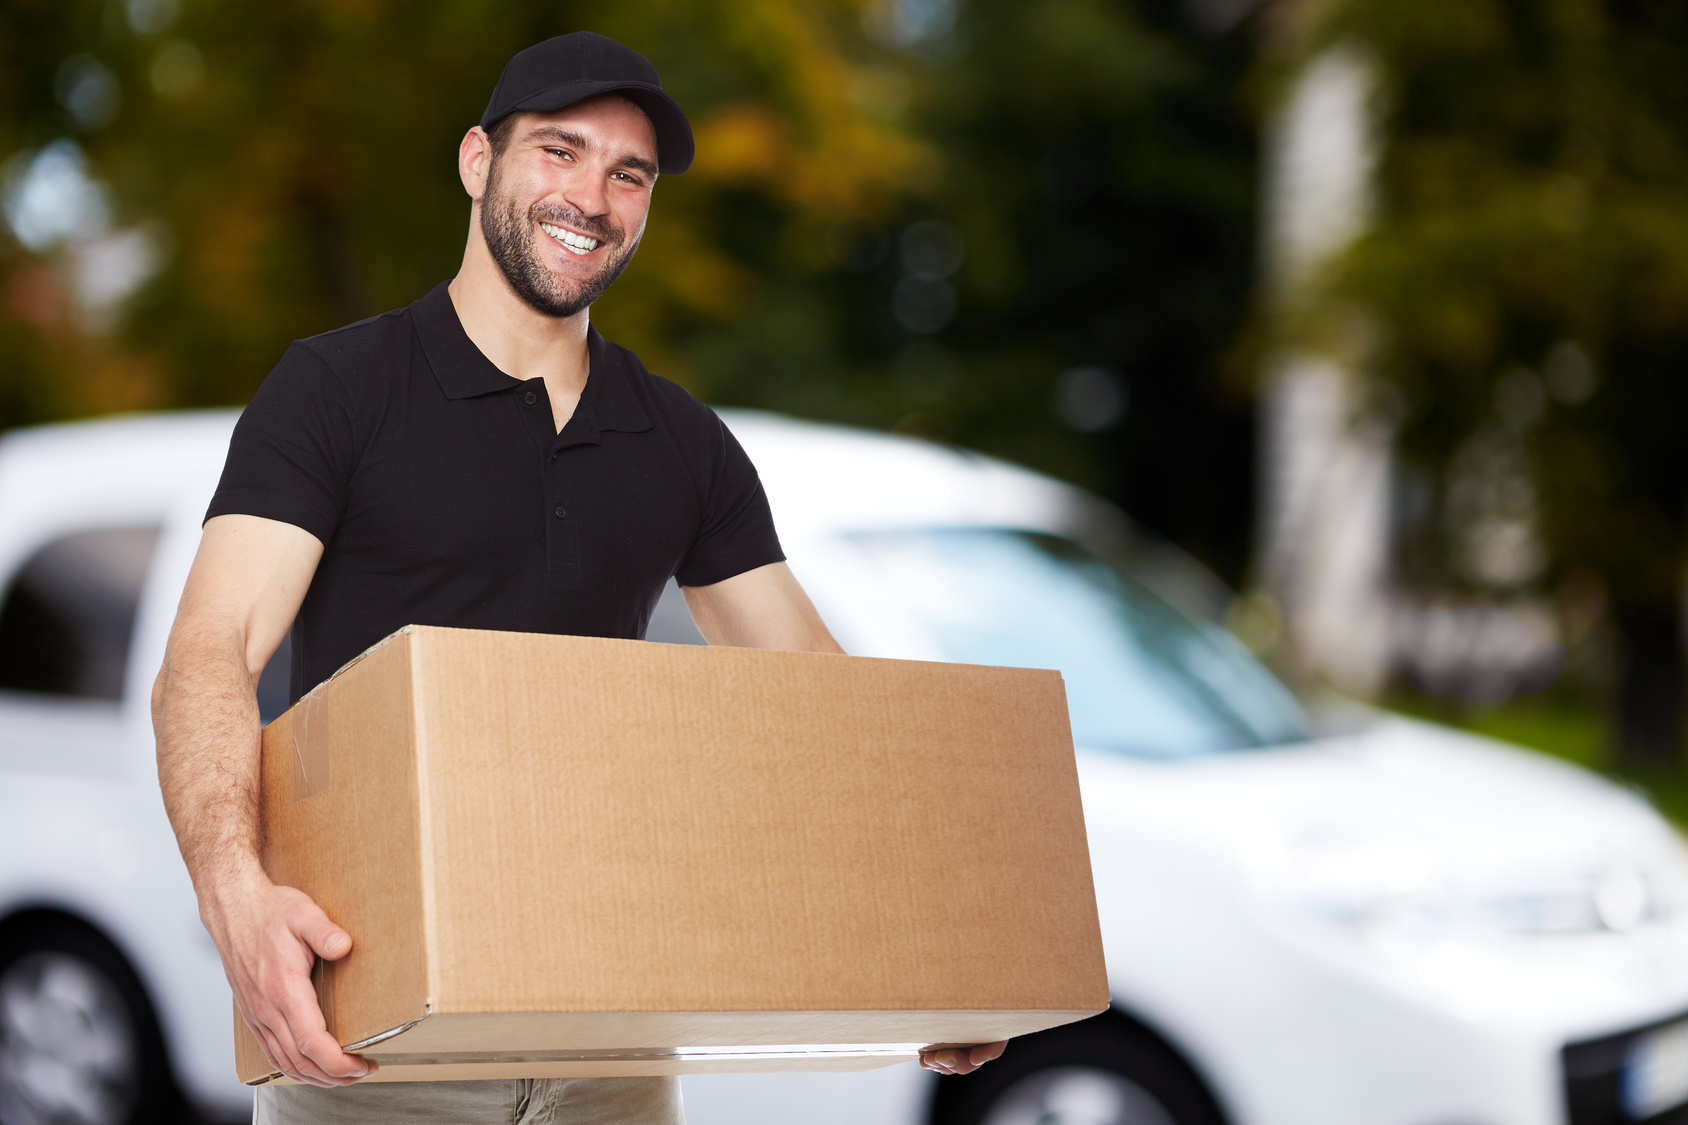 residential moving company